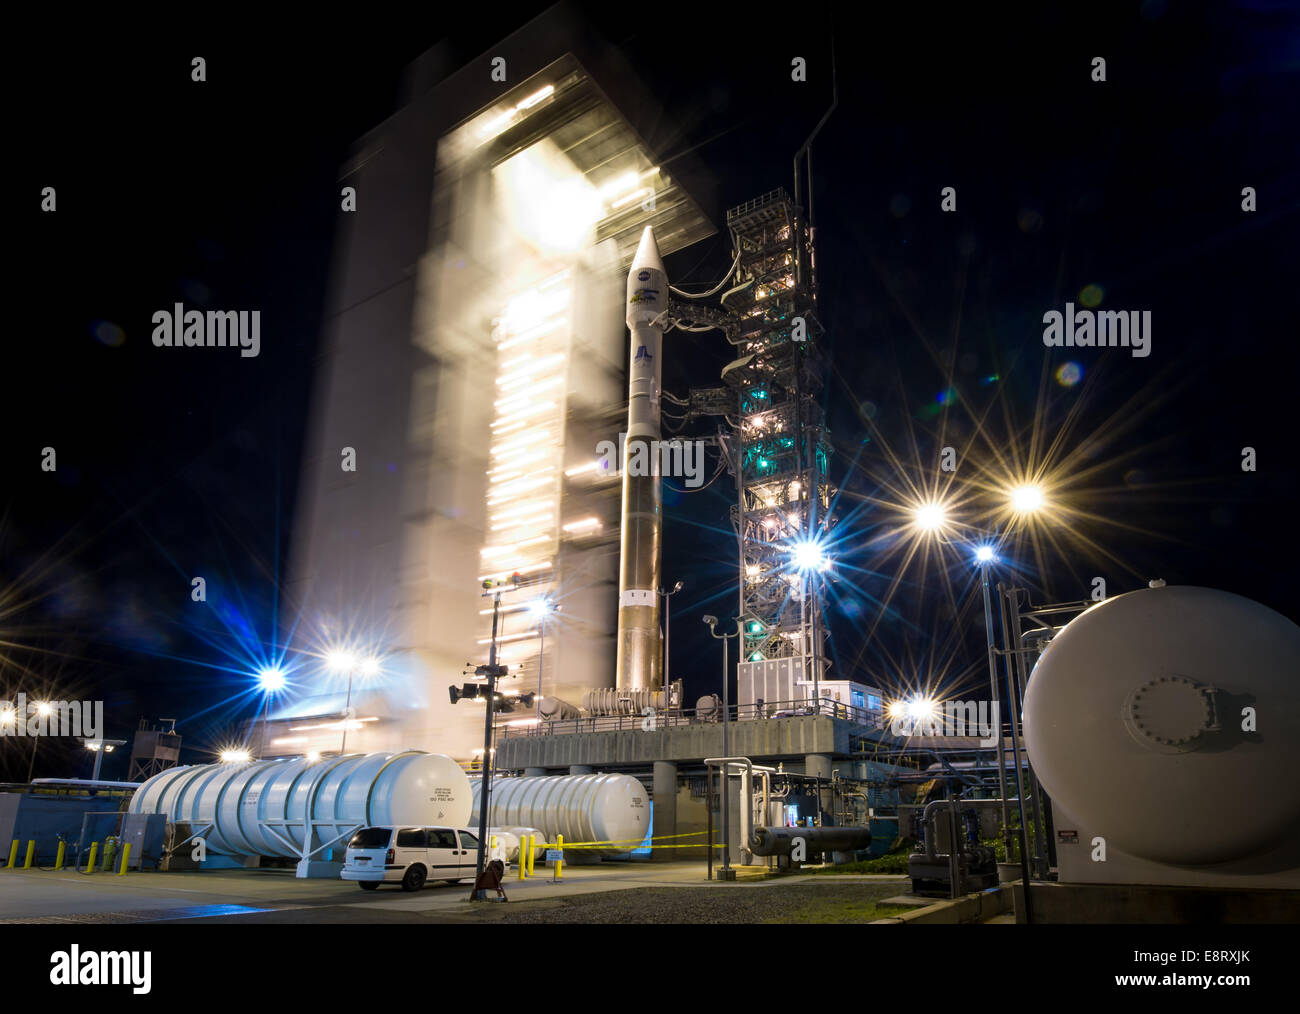 The launch pad tower at SLC-3 is rolled back to reveal the United Launch Alliance (ULA) Atlas-V rocket with the - Stock Image